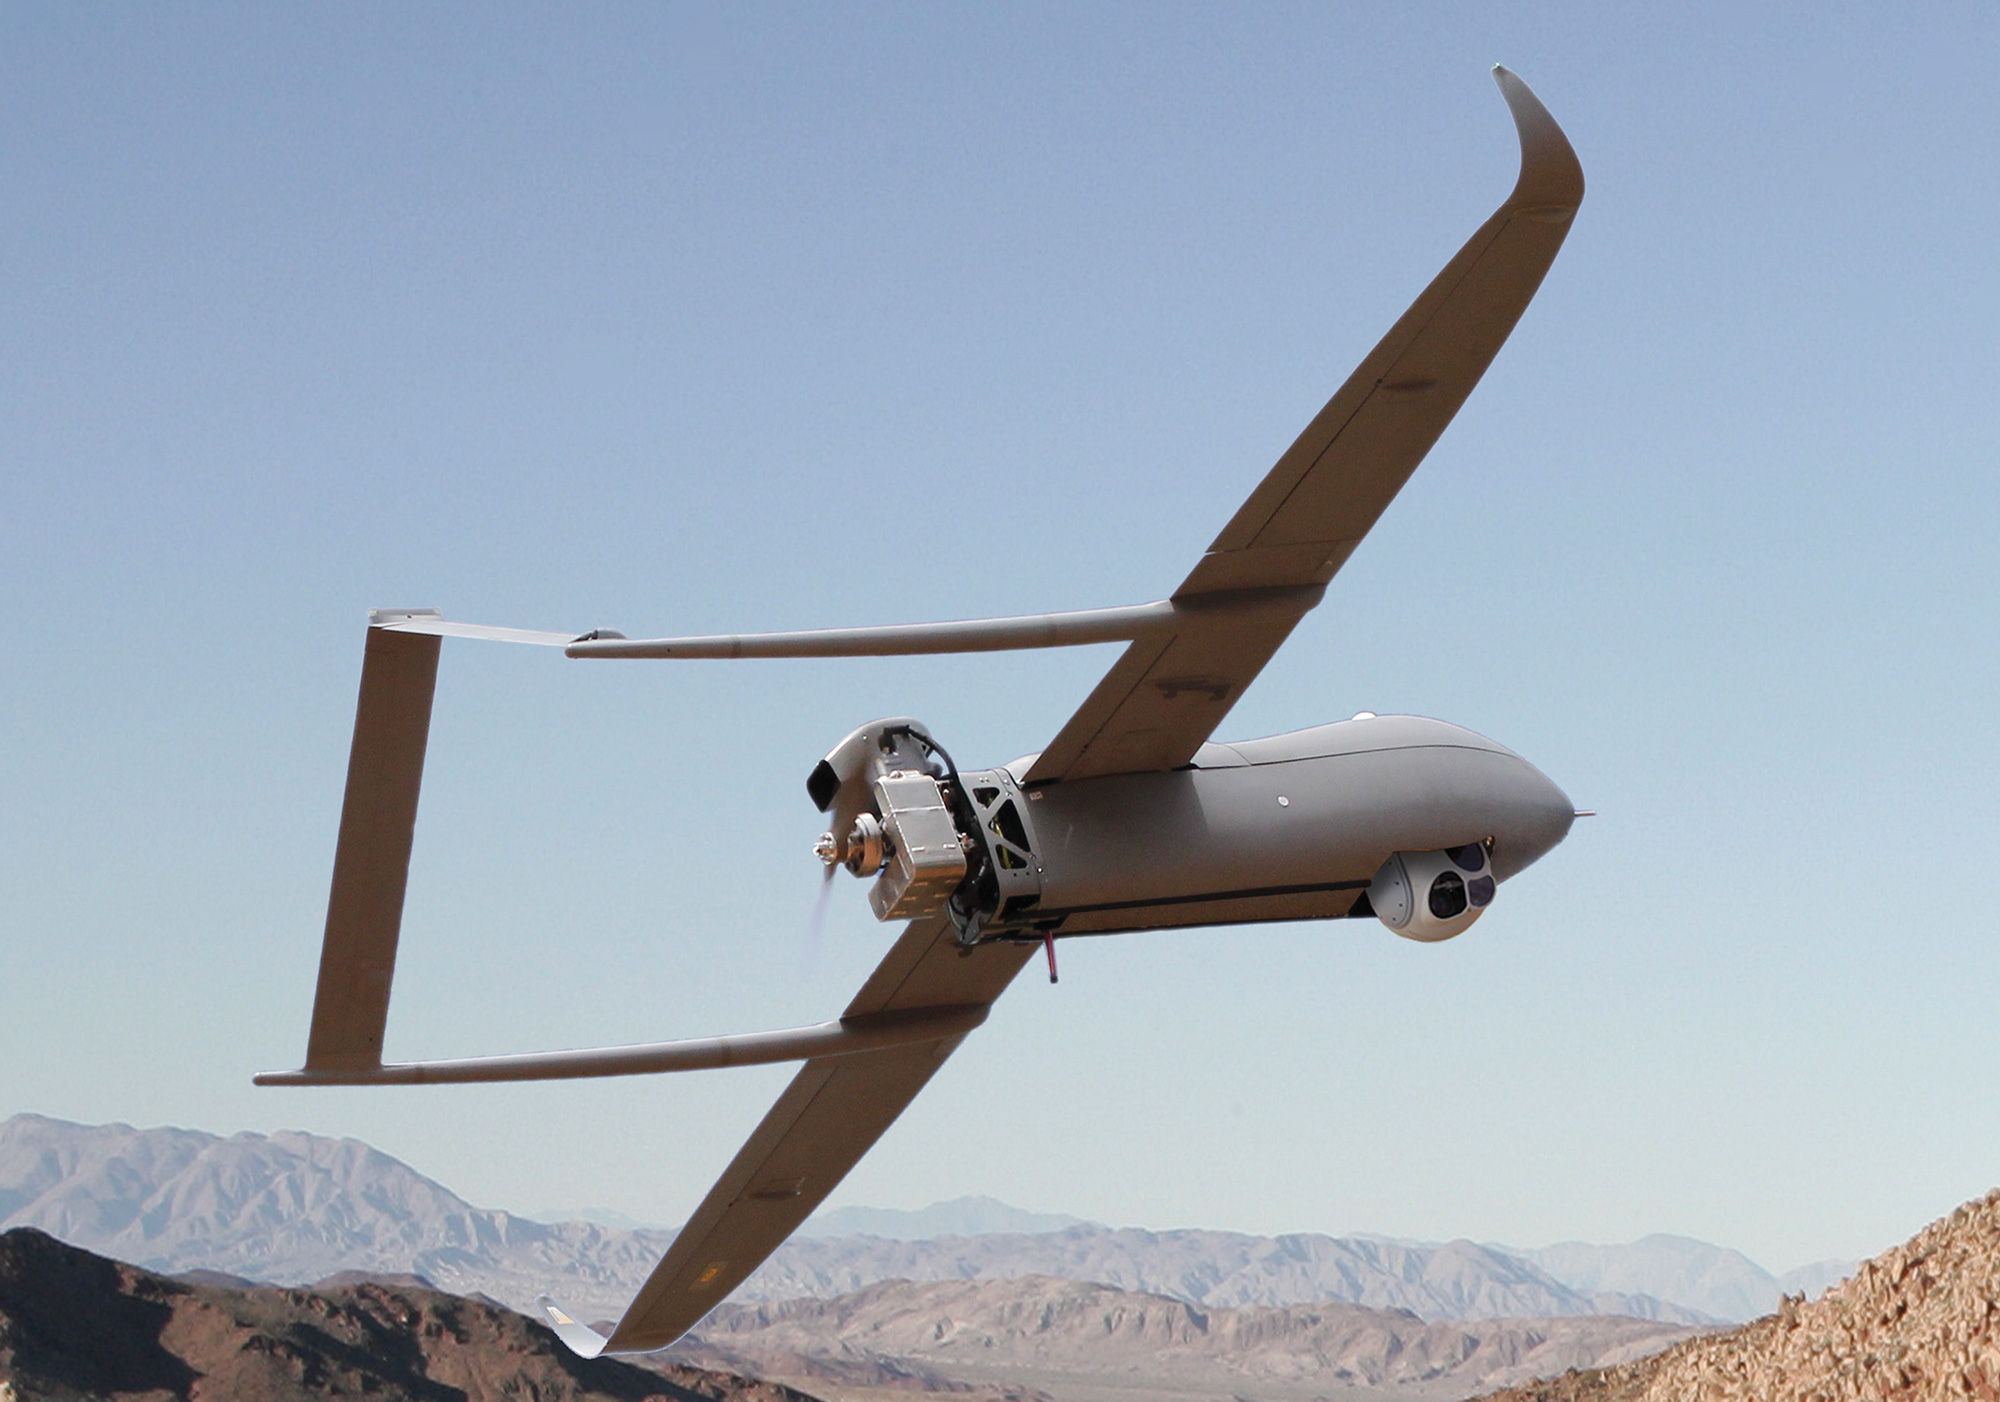 Lycoming Engines Sees New Markets In UAS Segment | Defense